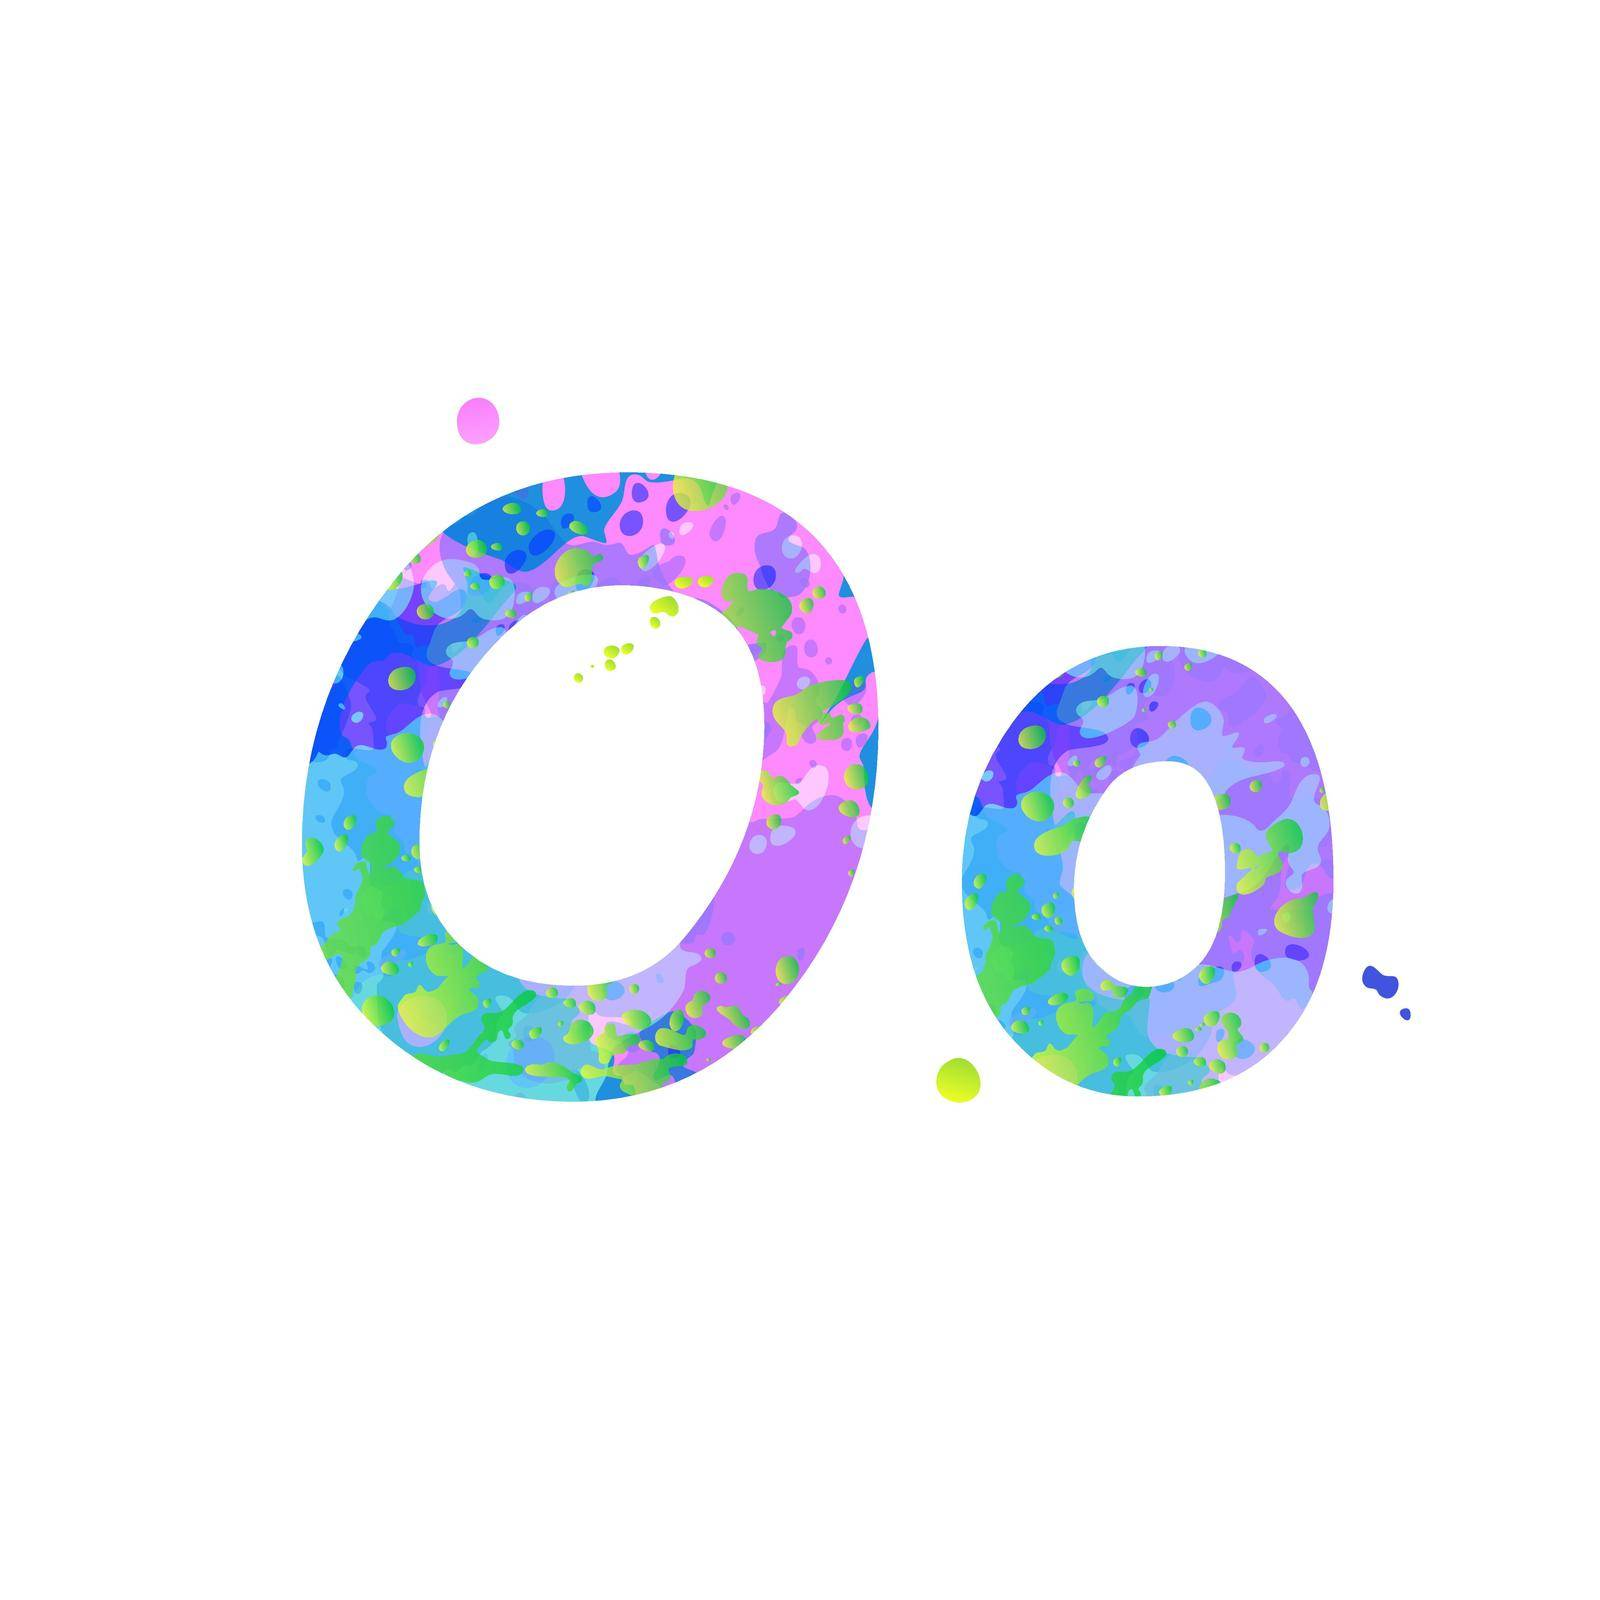 Letters O uppercase and lowercase with effect of liquid spots of paint in blue, green, pink colors, isolated on white background. Decoration element for design of a flyer, poster, cover, title. Vector